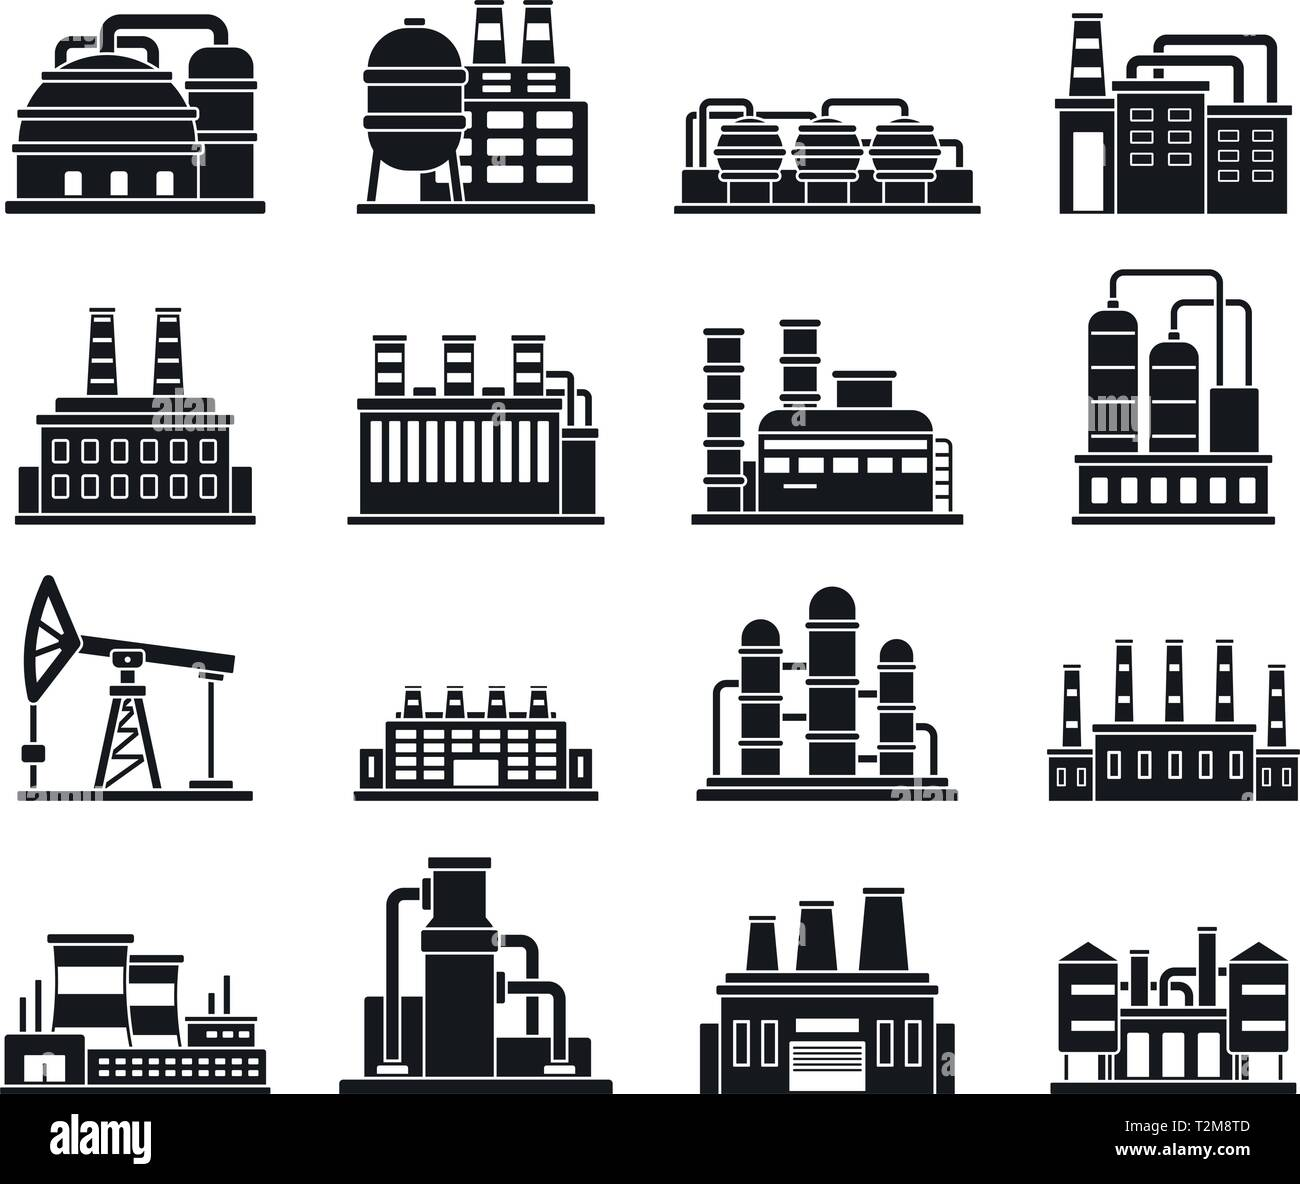 refinery plant factory icons